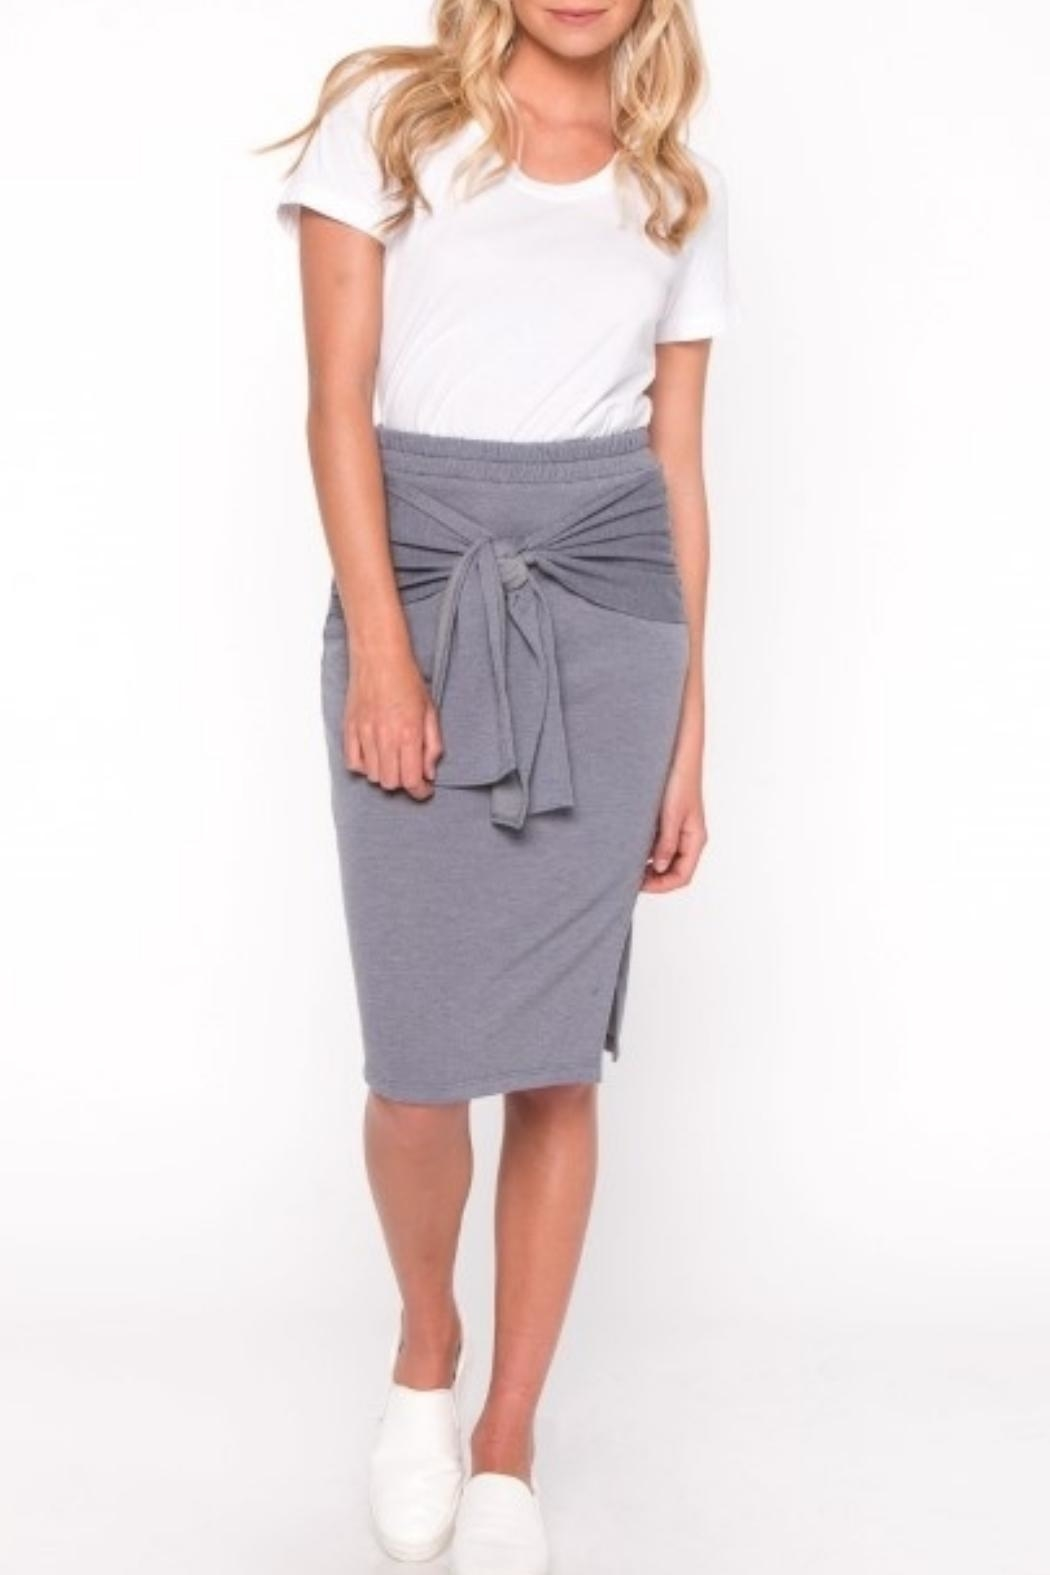 Everly Front Tie Skirt - Main Image